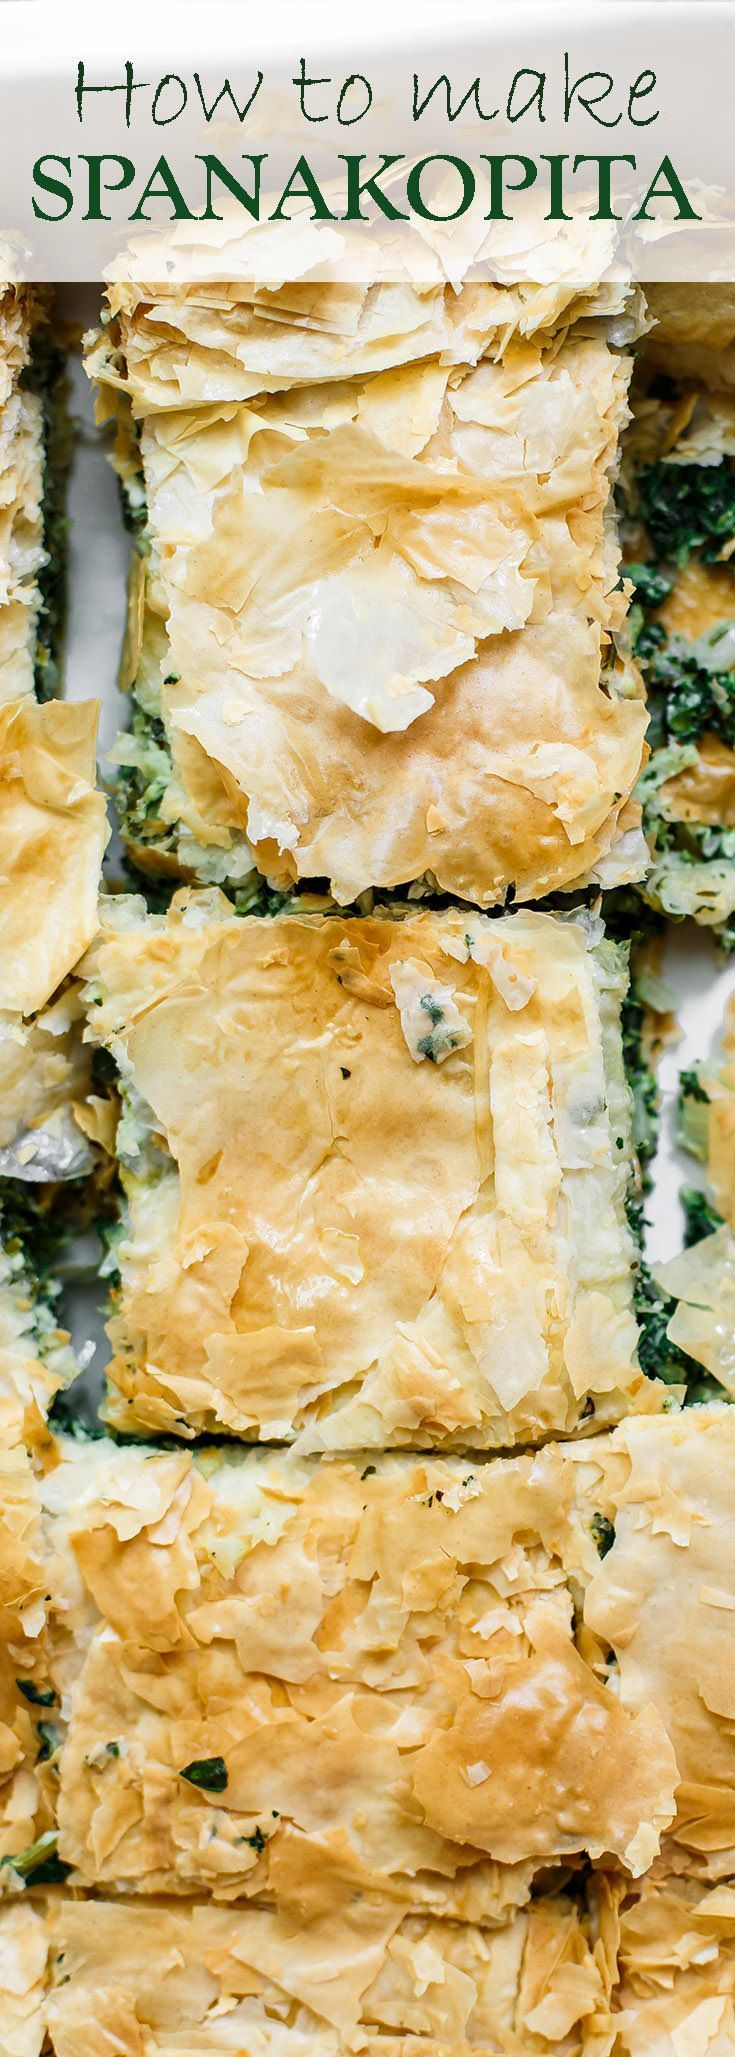 Spanakopita Recipe (Greek Spinach Pie) | The Mediterranean Dish. The best tutorial for how to make spanakopita. Greek spinach pie with crispy, golden phyllo and a soft filling of spinach, feta cheese, and herbs. A holiday recipe for make it for dinner! So easy.